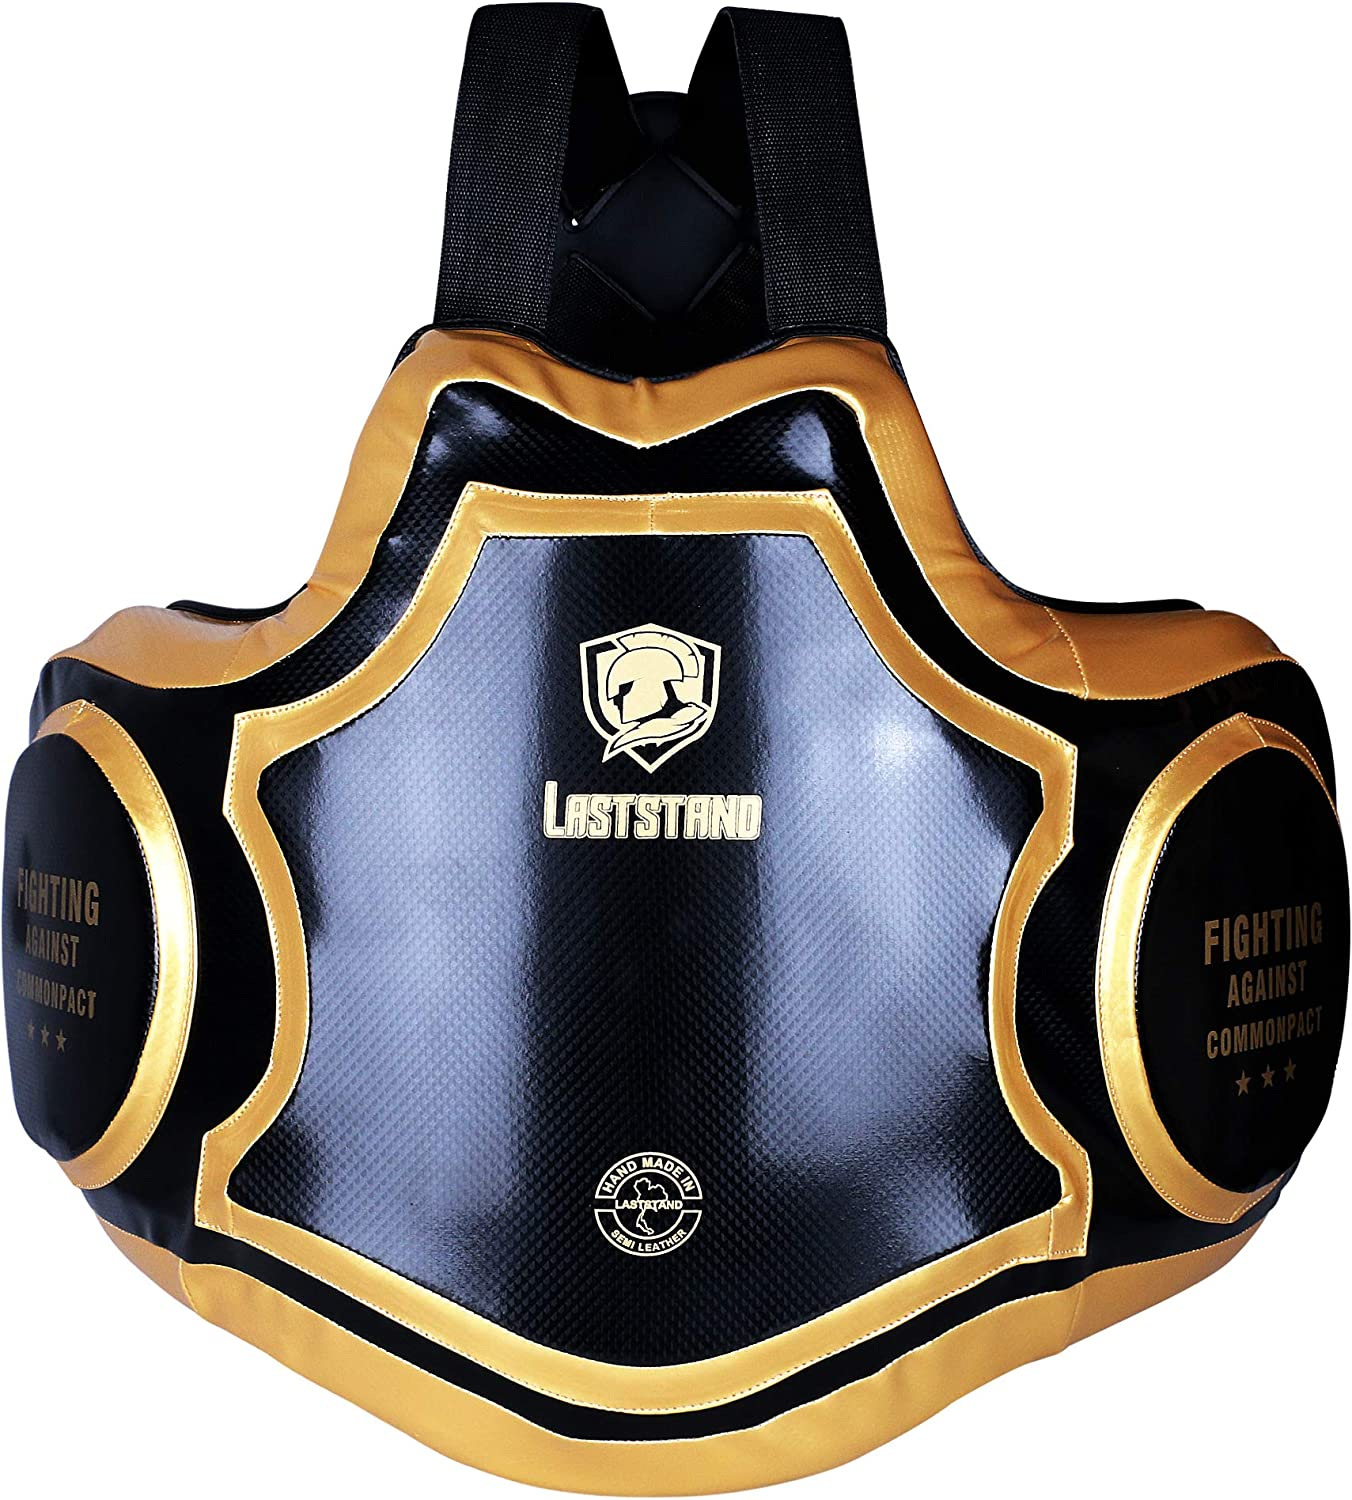 ASTSTAND Boxing Chest SEAL limited product Guard Body MMA Armour Protector Max 67% OFF Taekwondo